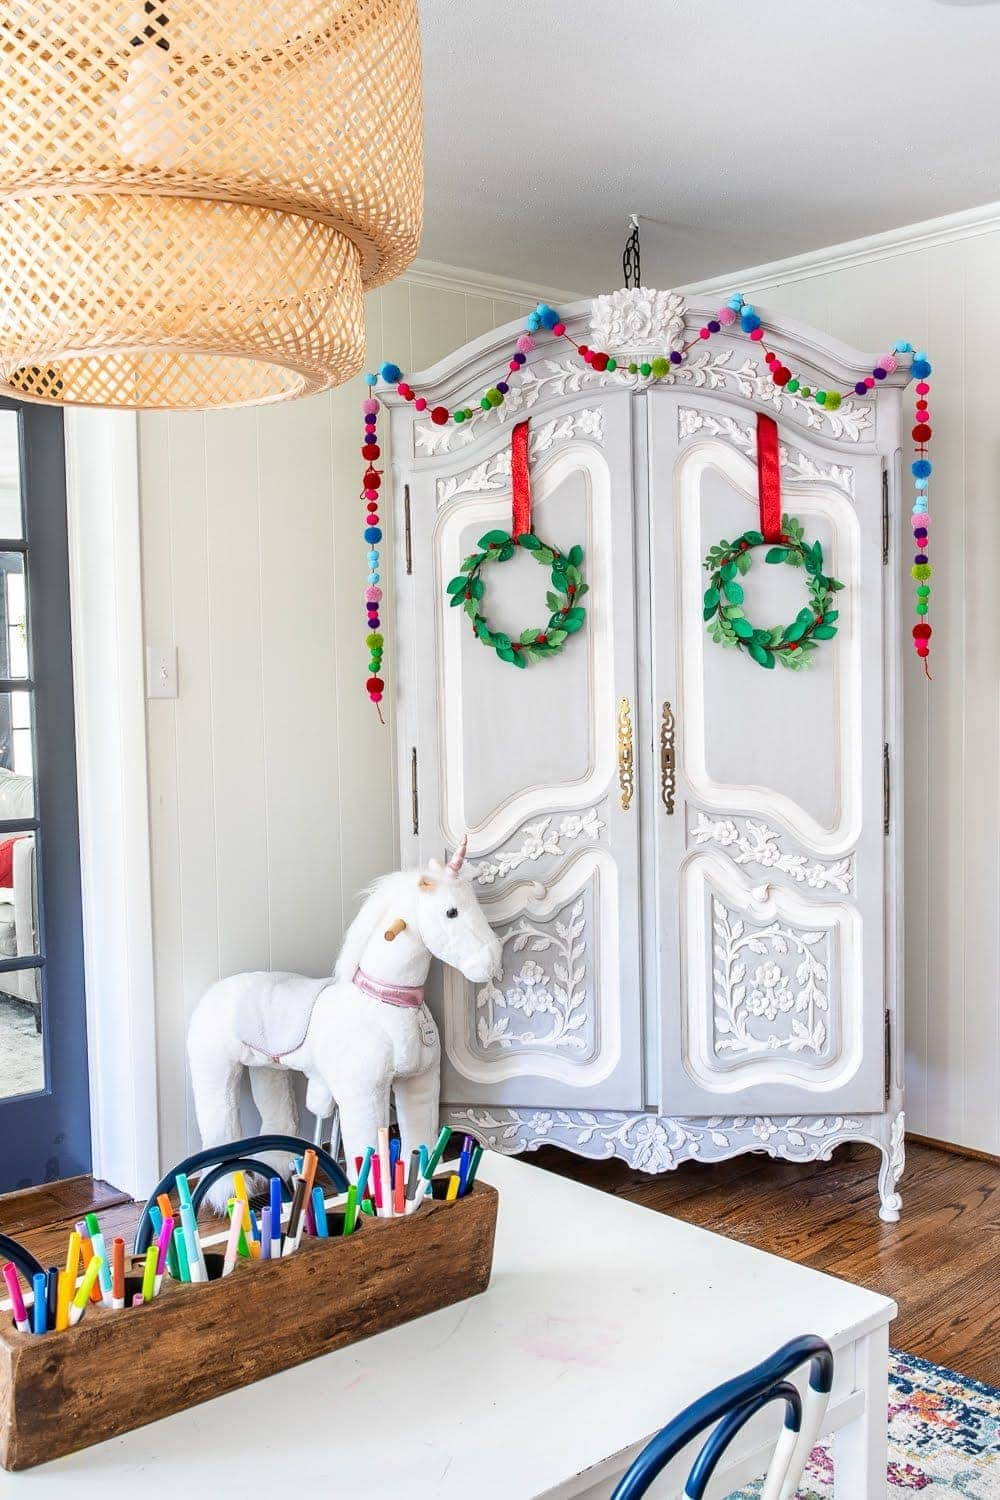 Colorful Christmas Playroom | Pom pom garland and felt wreaths on wardrobe reading nook cabinet